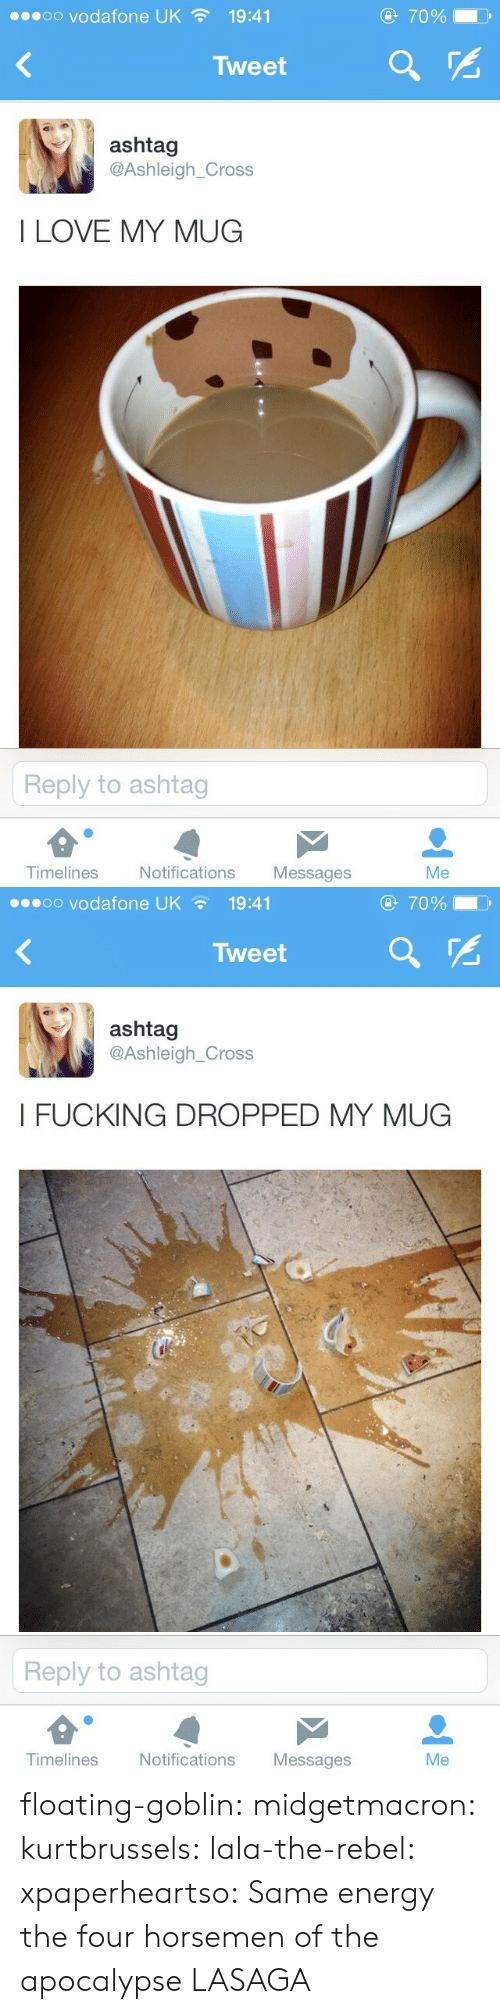 Energy, Fucking, and Love: oo vodafone UK  70%  19:41  Tweet  ashtag  @Ashleigh_Cross  I LOVE MY MUG  Reply to ashtag  Timelines  Notifications  Messages  Me   oo vodafone UK  70%  19:41  Tweet  ashtag  @Ashleigh_Cross  I FUCKING DROPPED MY MUG  Reply to ashtag  Timelines  Notifications  Messages  Me floating-goblin: midgetmacron:  kurtbrussels:  lala-the-rebel:  xpaperheartso:  Same energy         the four horsemen of the apocalypse   LASAGA